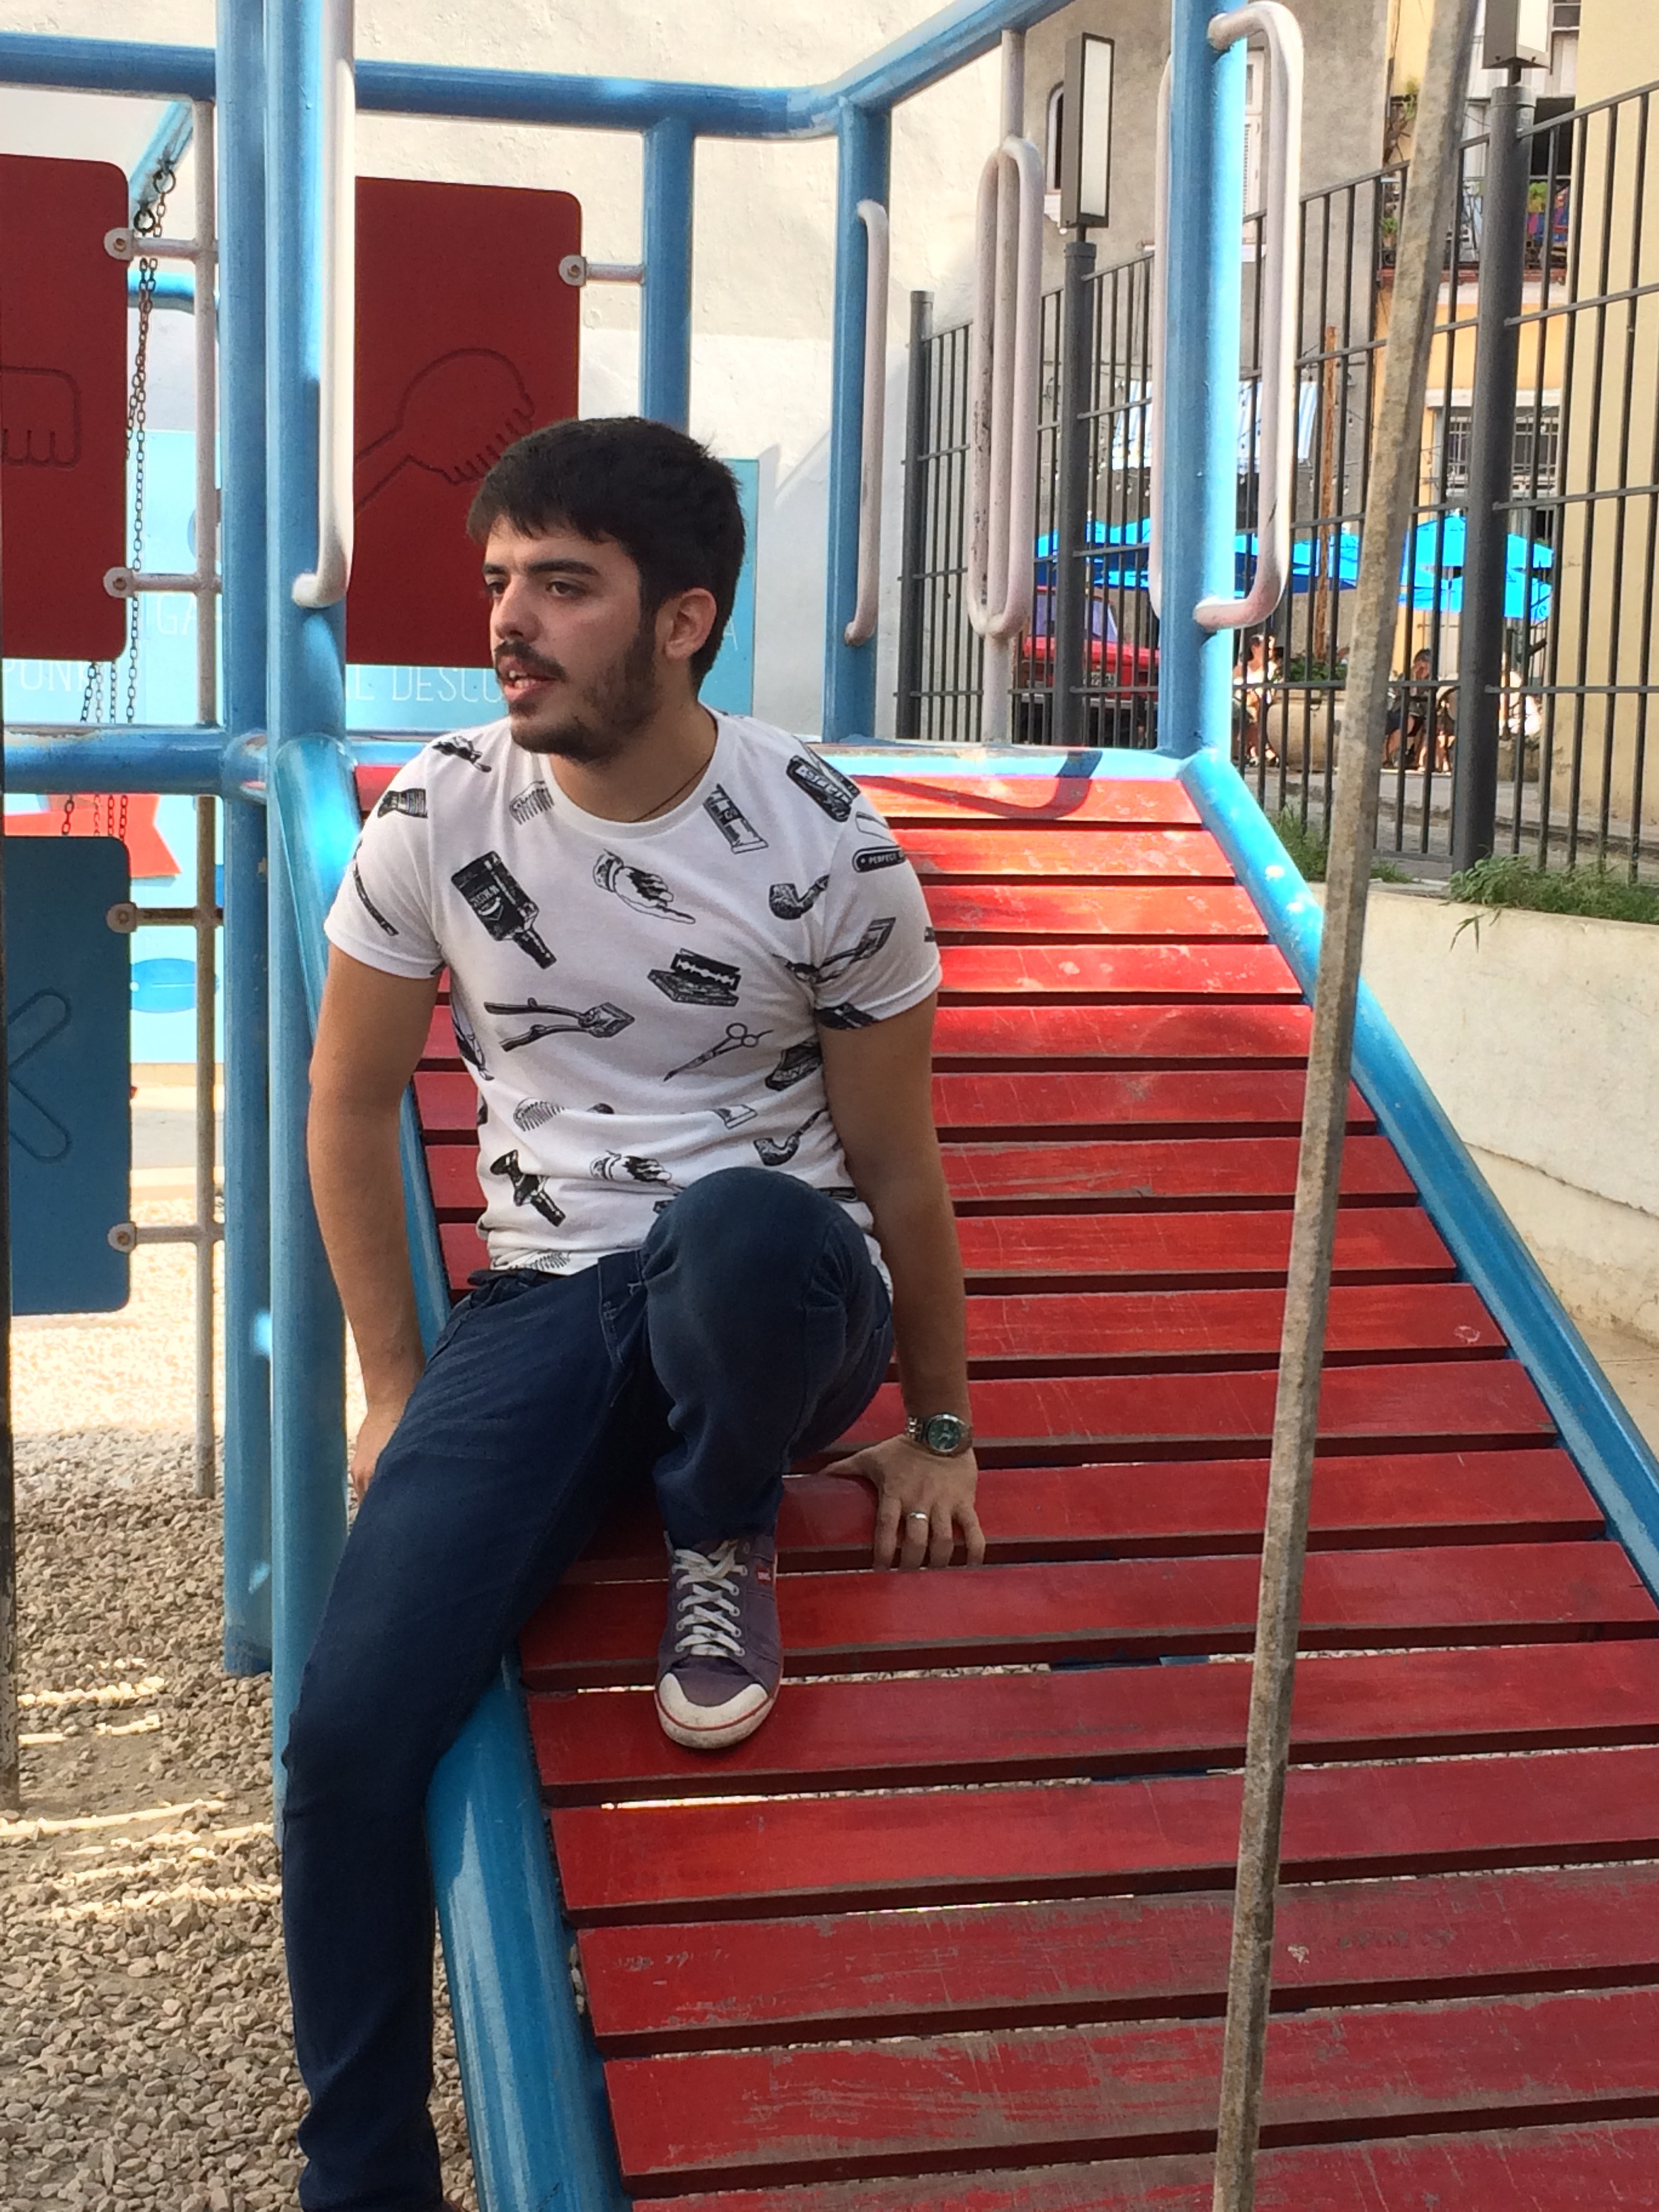 Carlos, relaxing on a play structure at the Barber's Park, said his mother gave him the shirt